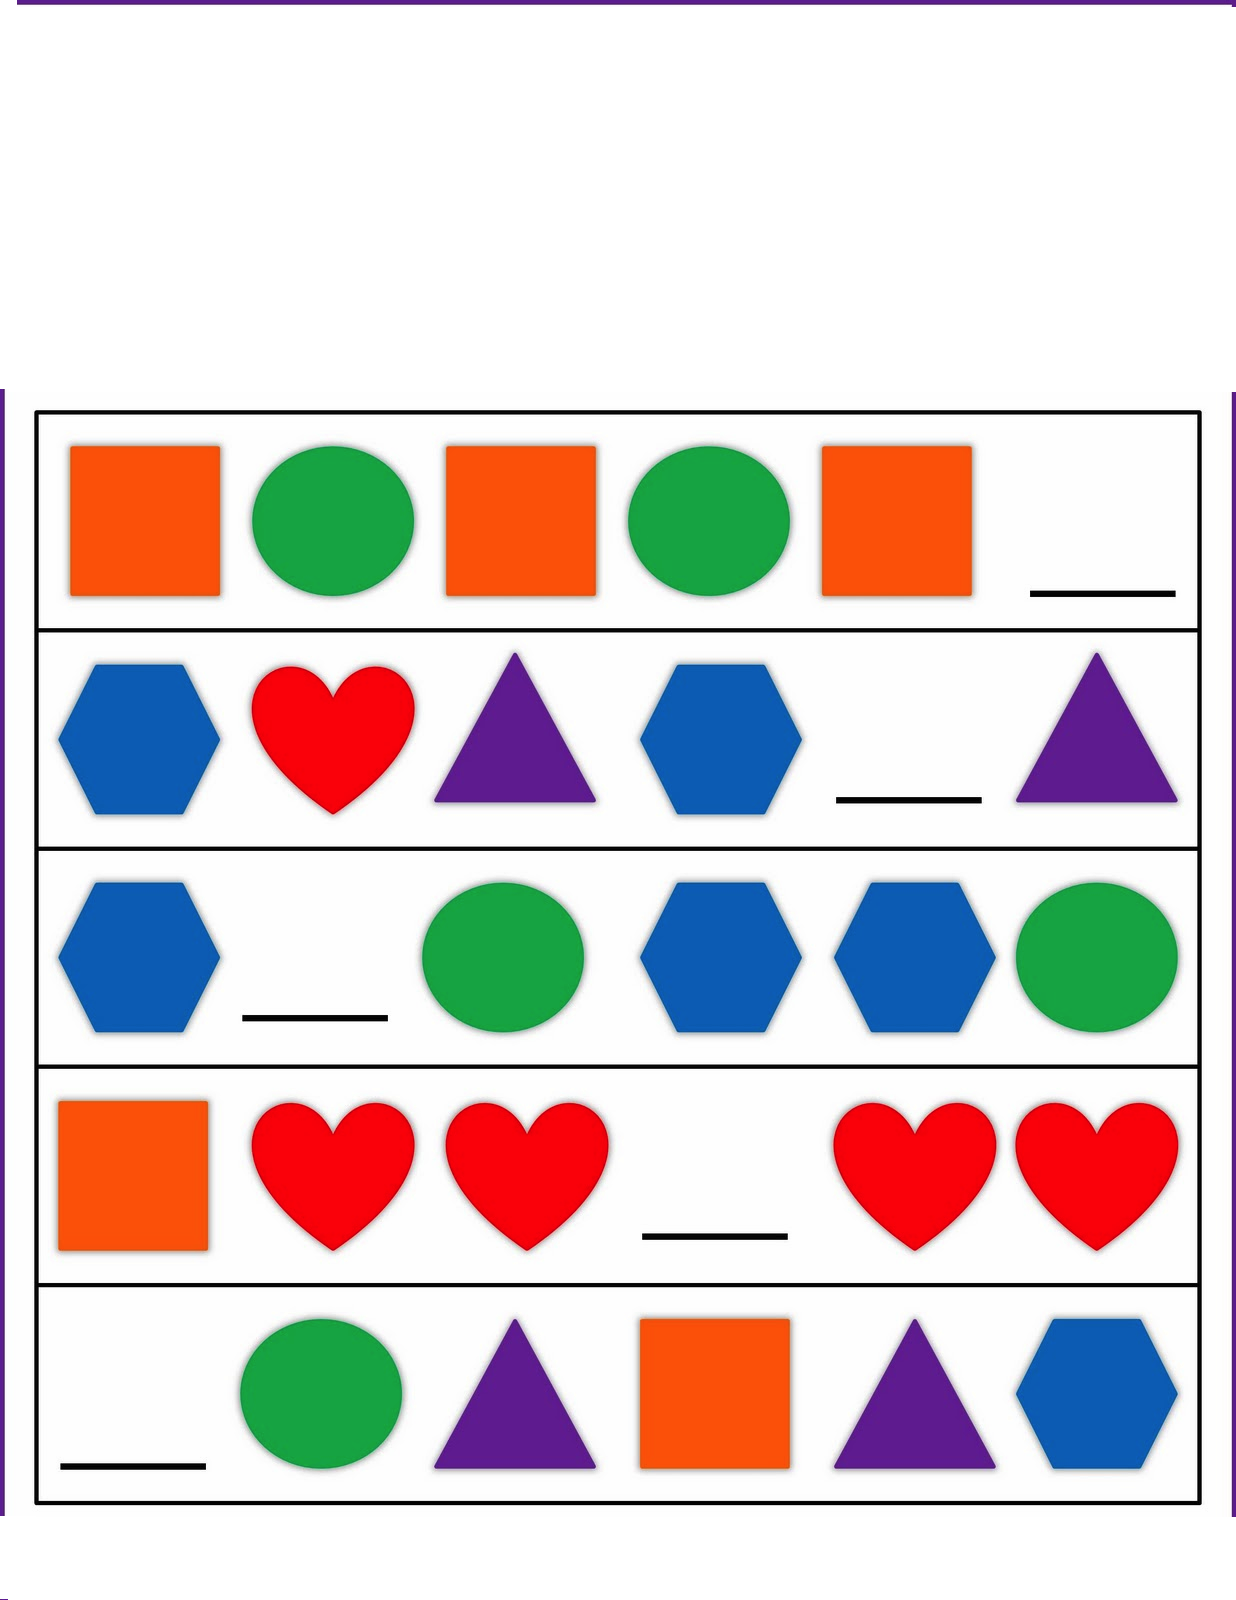 Little Solver Logic Puzzles For Preschoolers This App Is